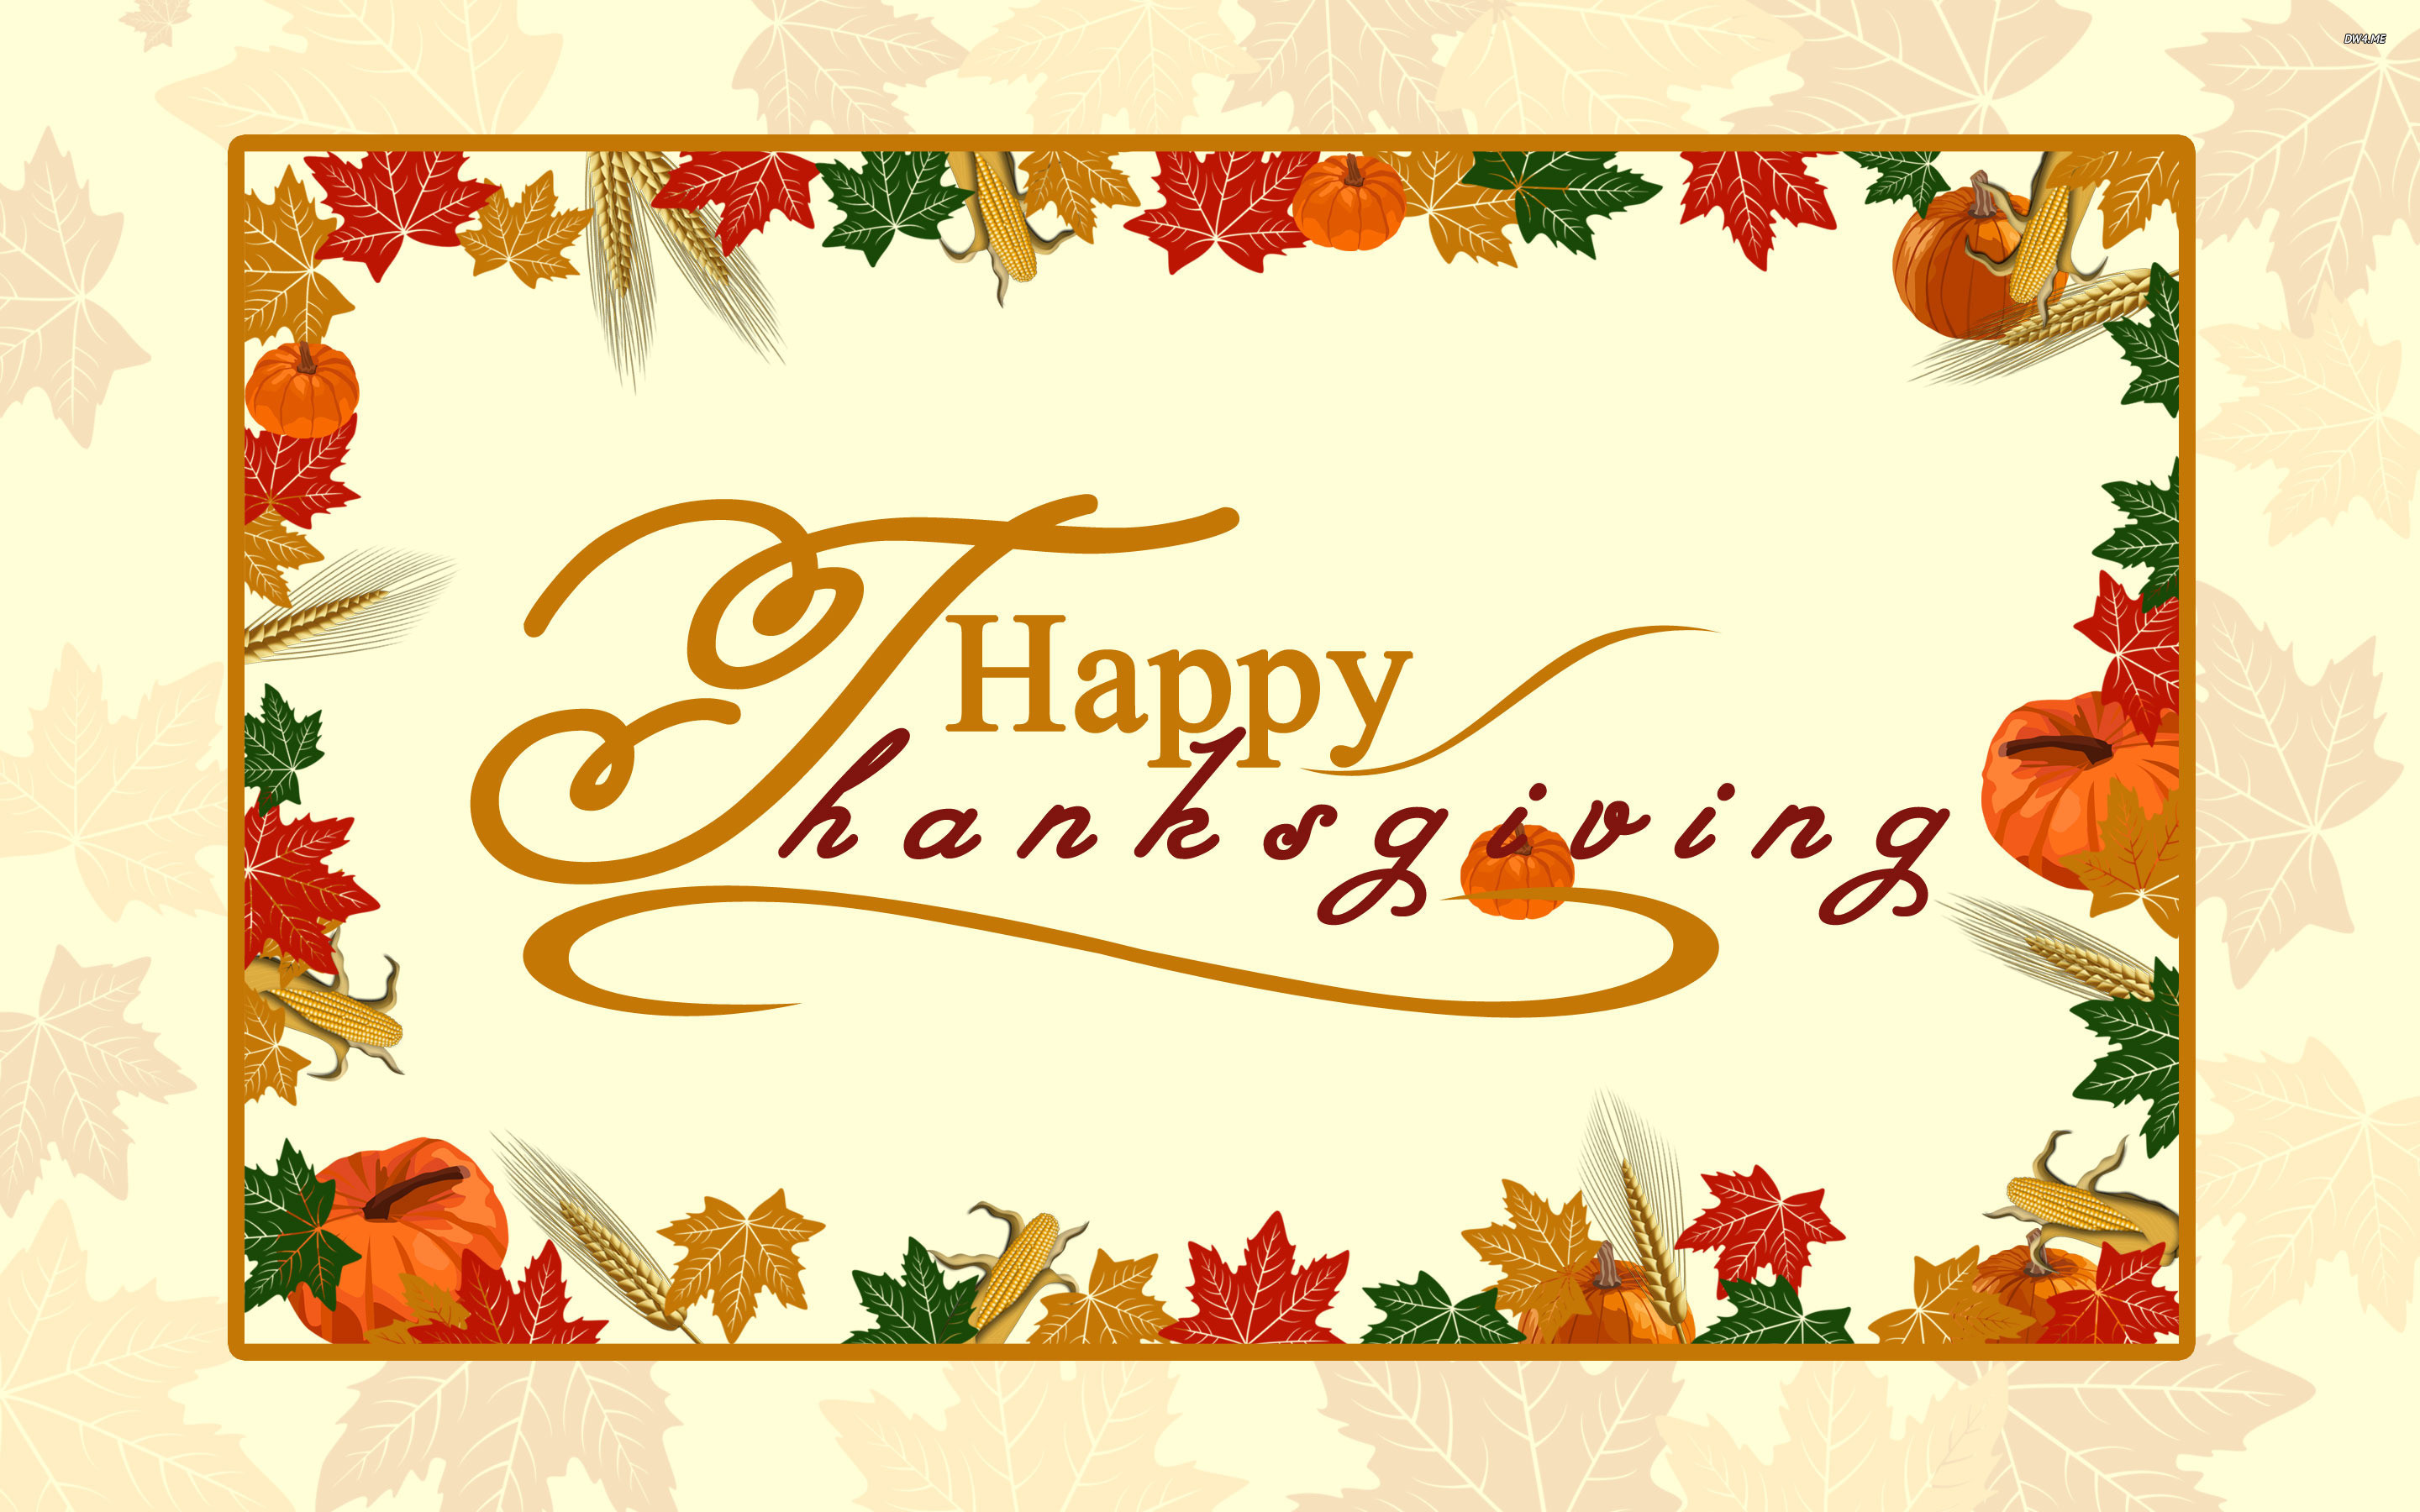 2880x1800 Happy Thanksgiving Holiday desktop wallpaper, Leaf wallpaper, Pumpkin  wallpaper, Thanksgiving wallpaper - Holidays no.